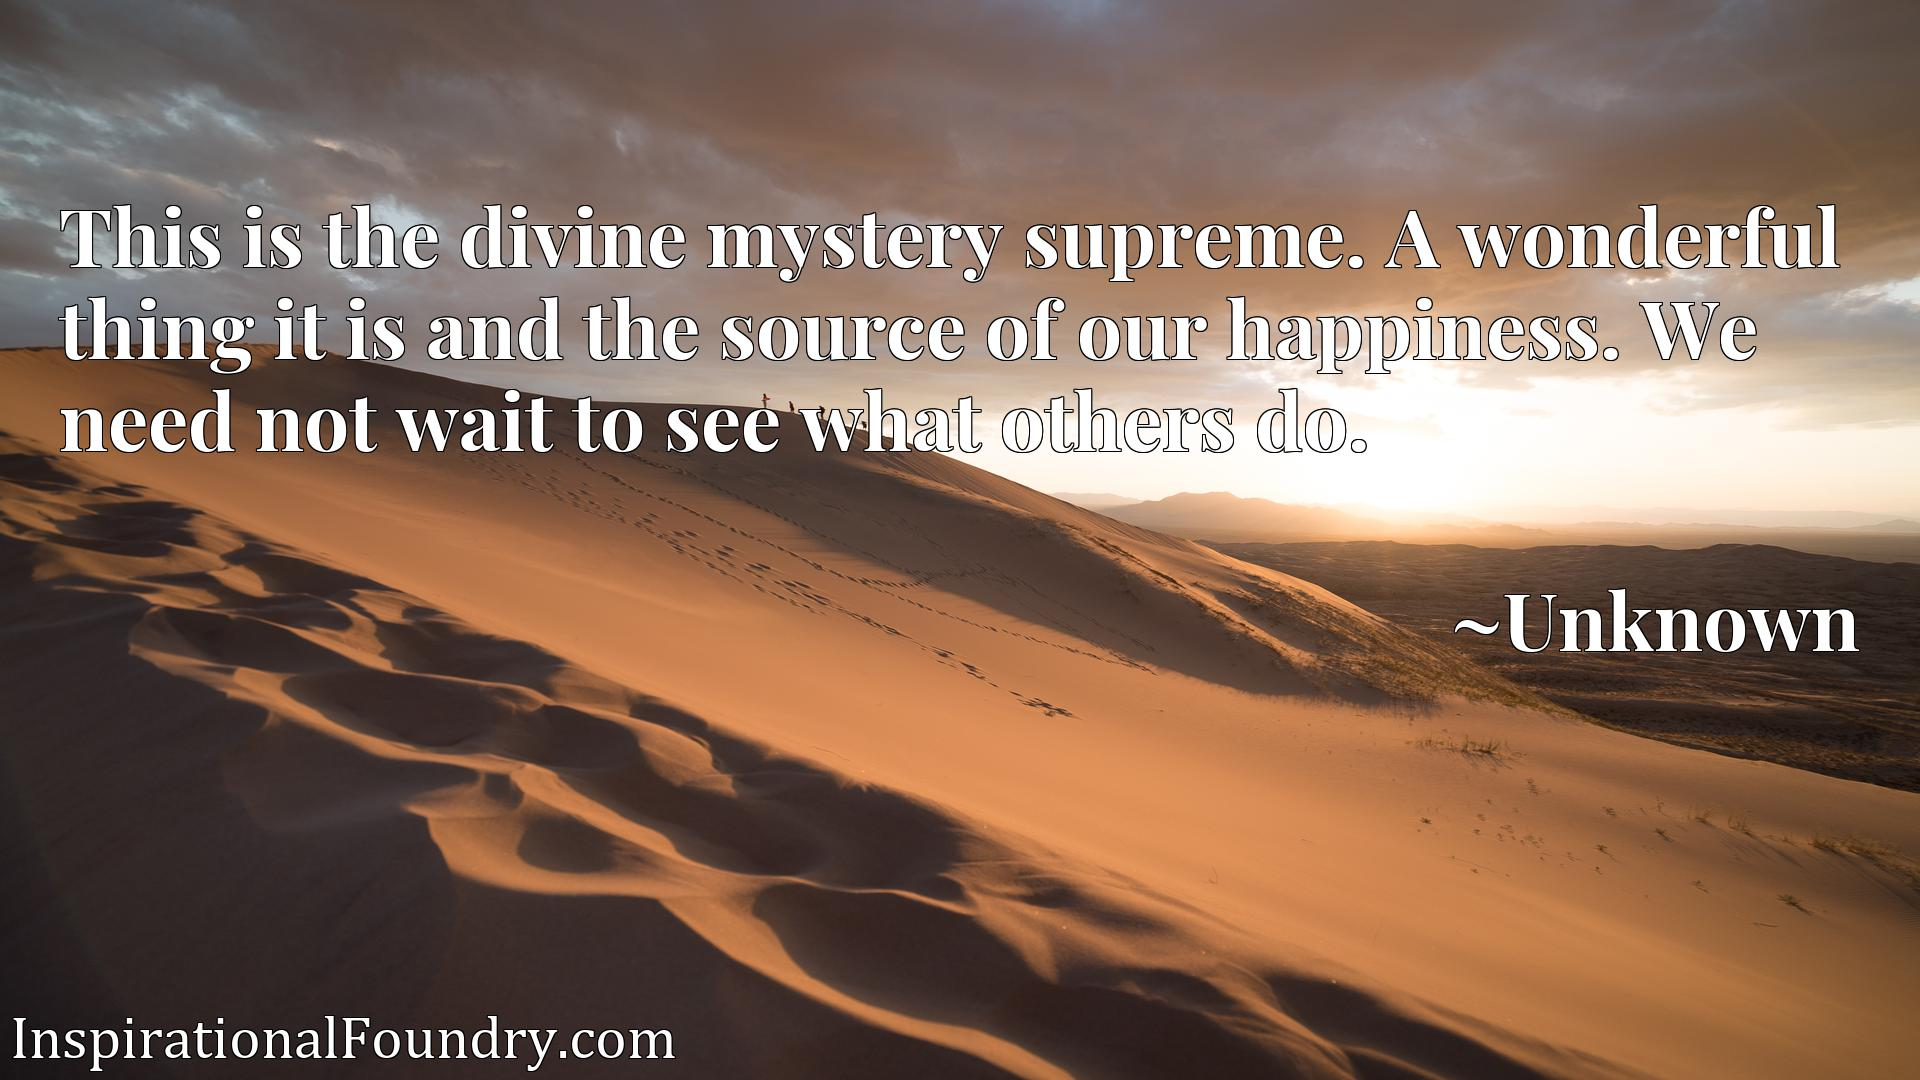 Quote Picture :This is the divine mystery supreme. A wonderful thing it is and the source of our happiness. We need not wait to see what others do.